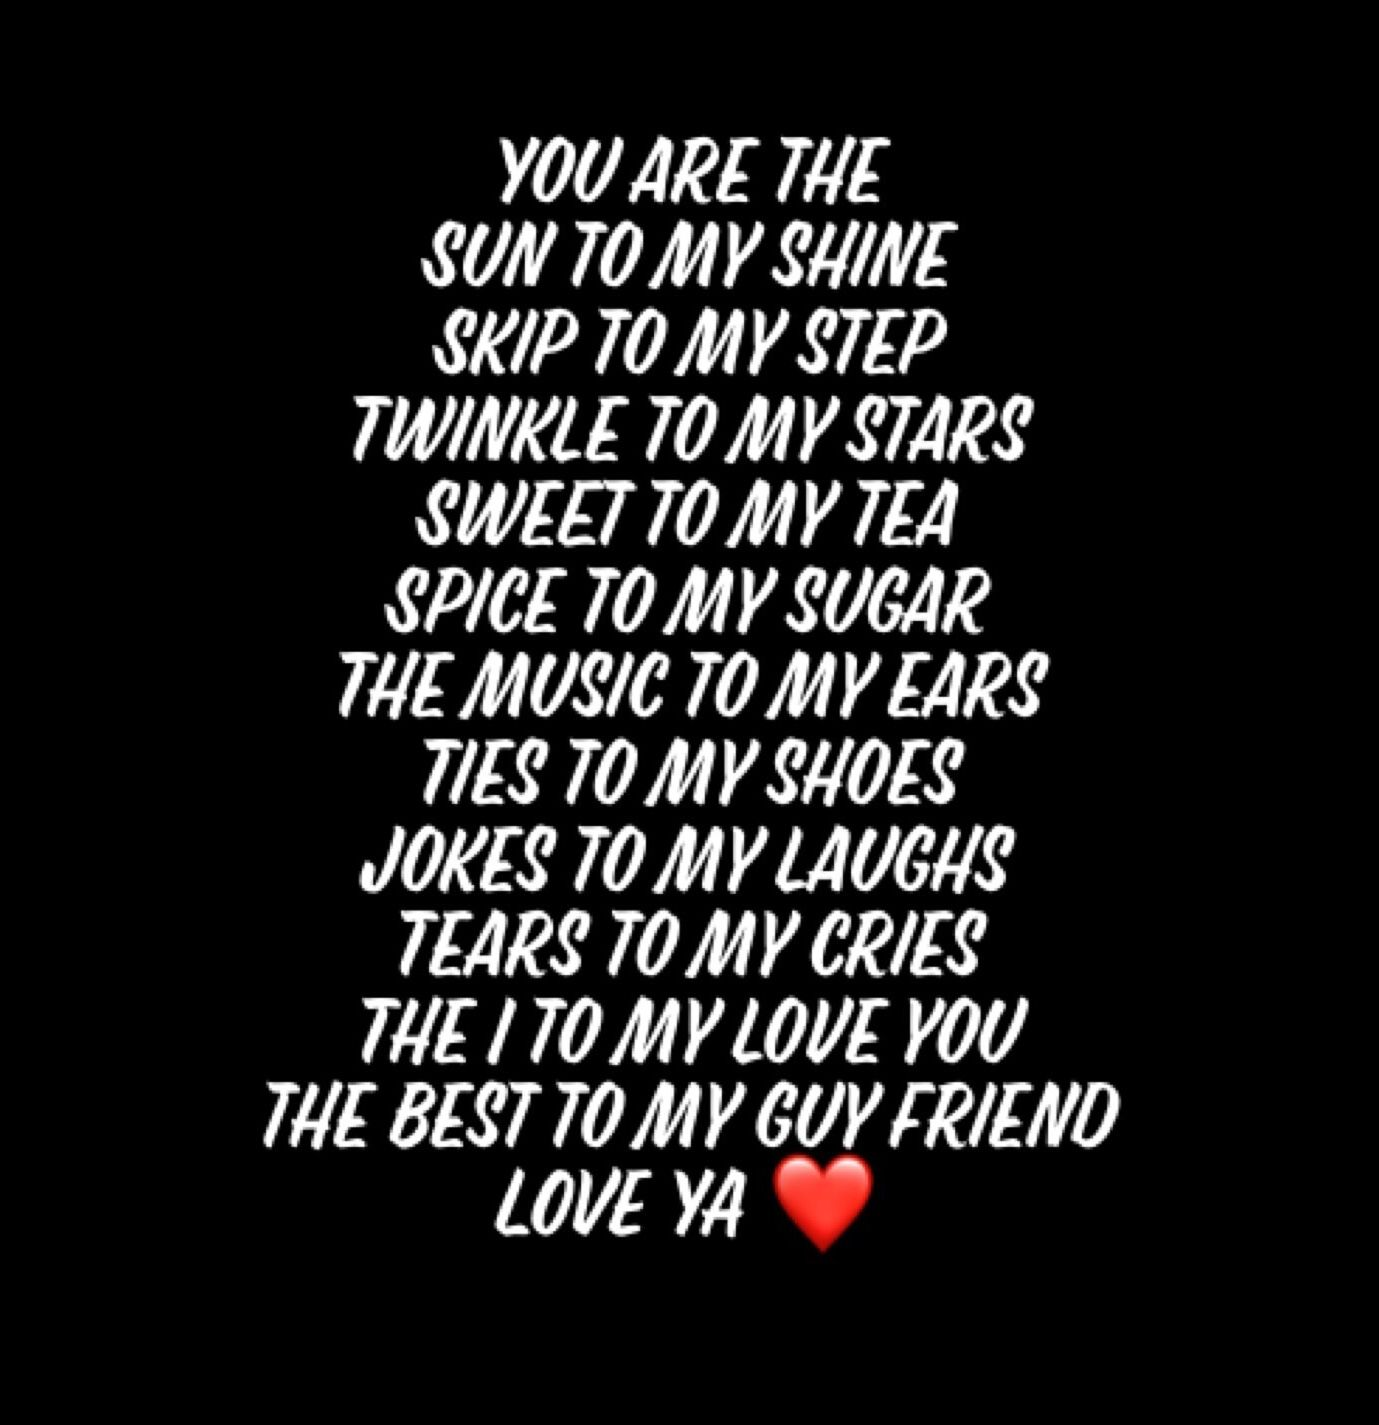 I love you best guy friend quotes